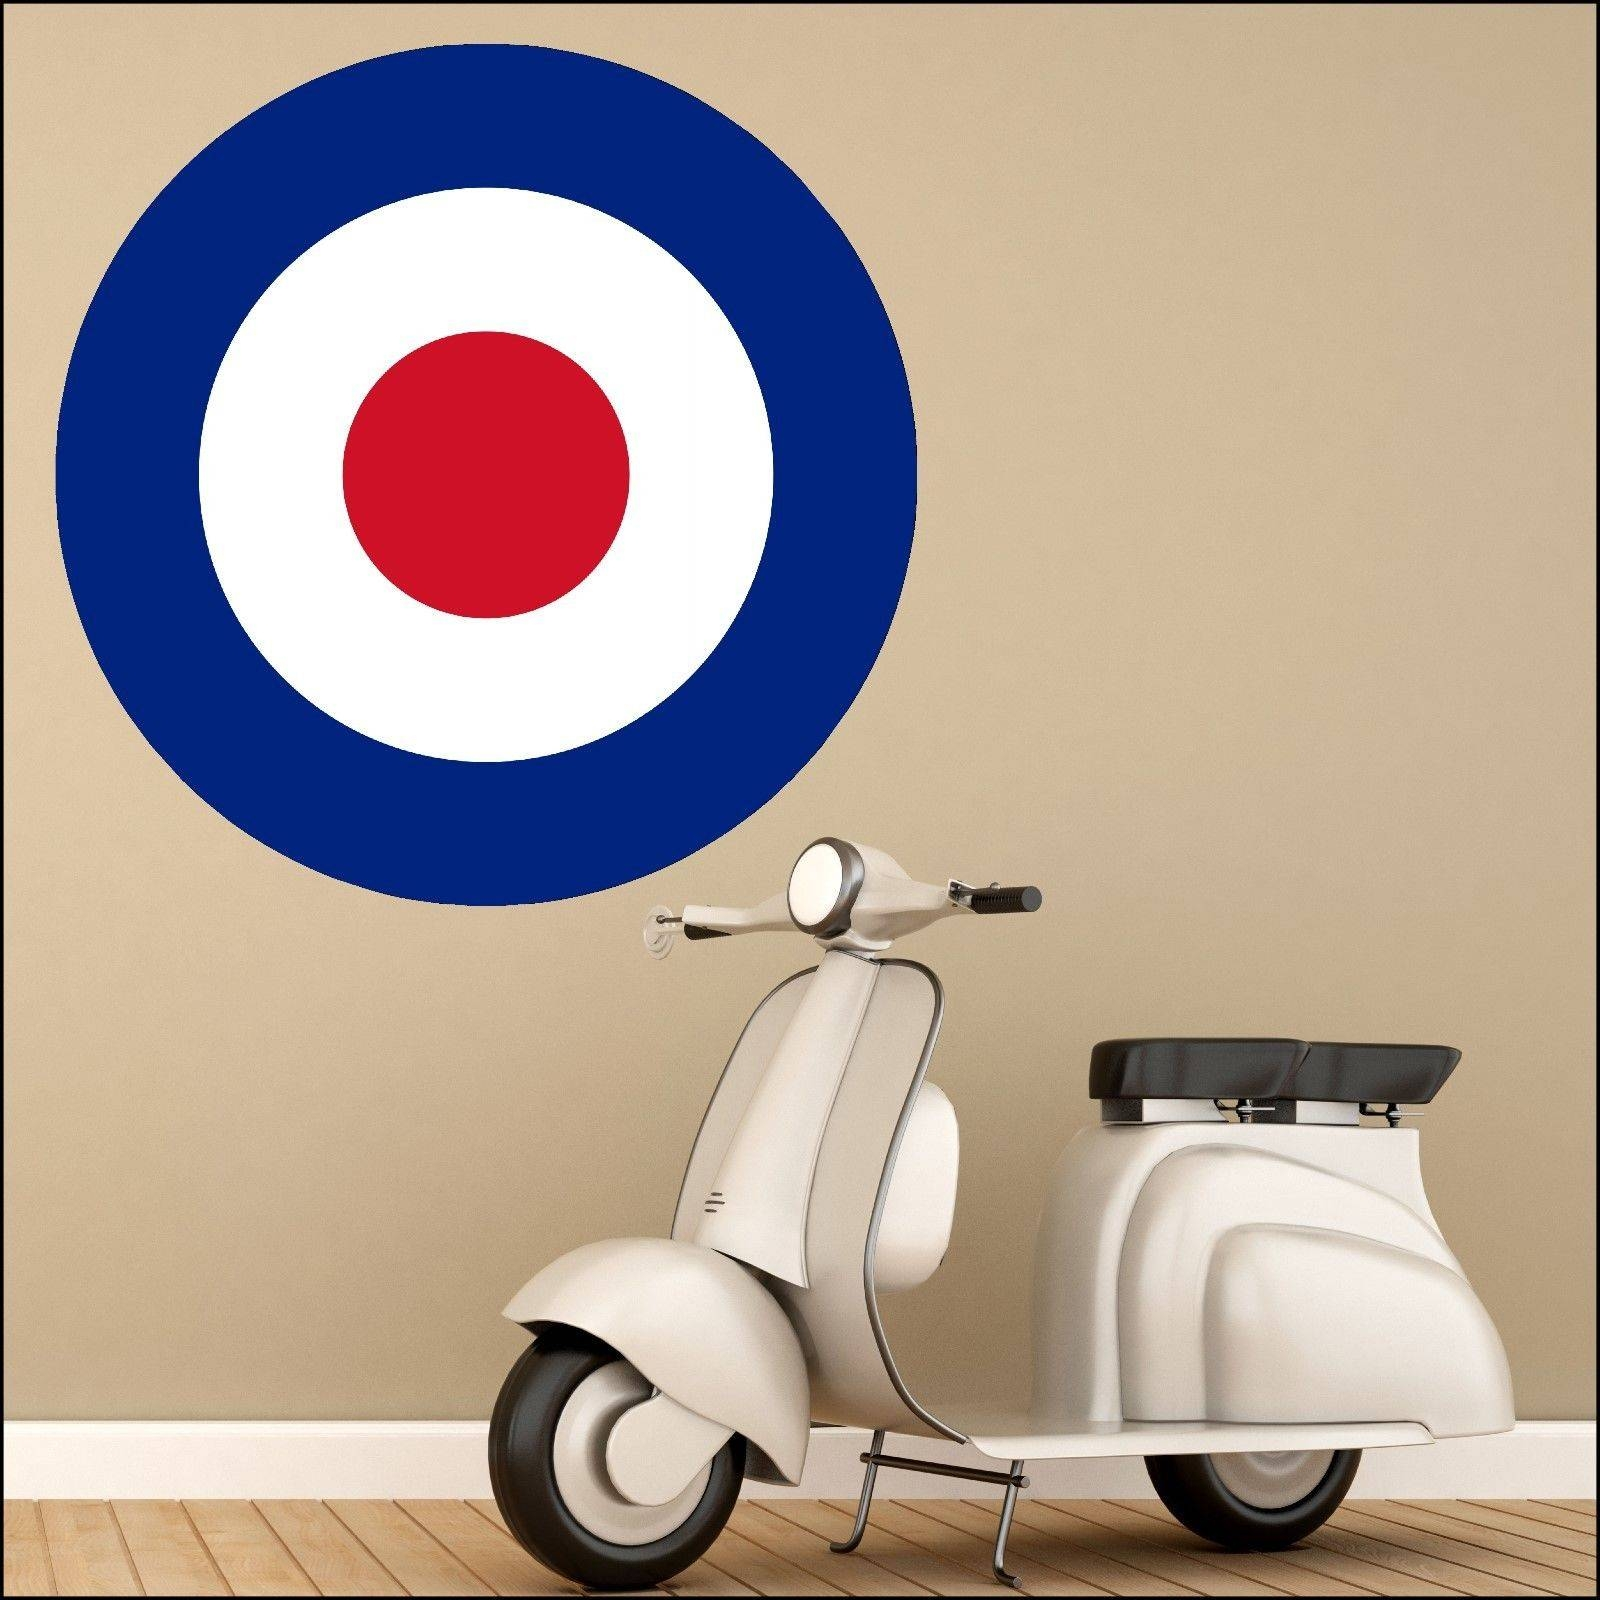 Large Mod Mods Scooter Red White Blue Target Wall Art Sticker 6 Intended For Most Up To Date Vespa 3d Wall Art (View 15 of 20)